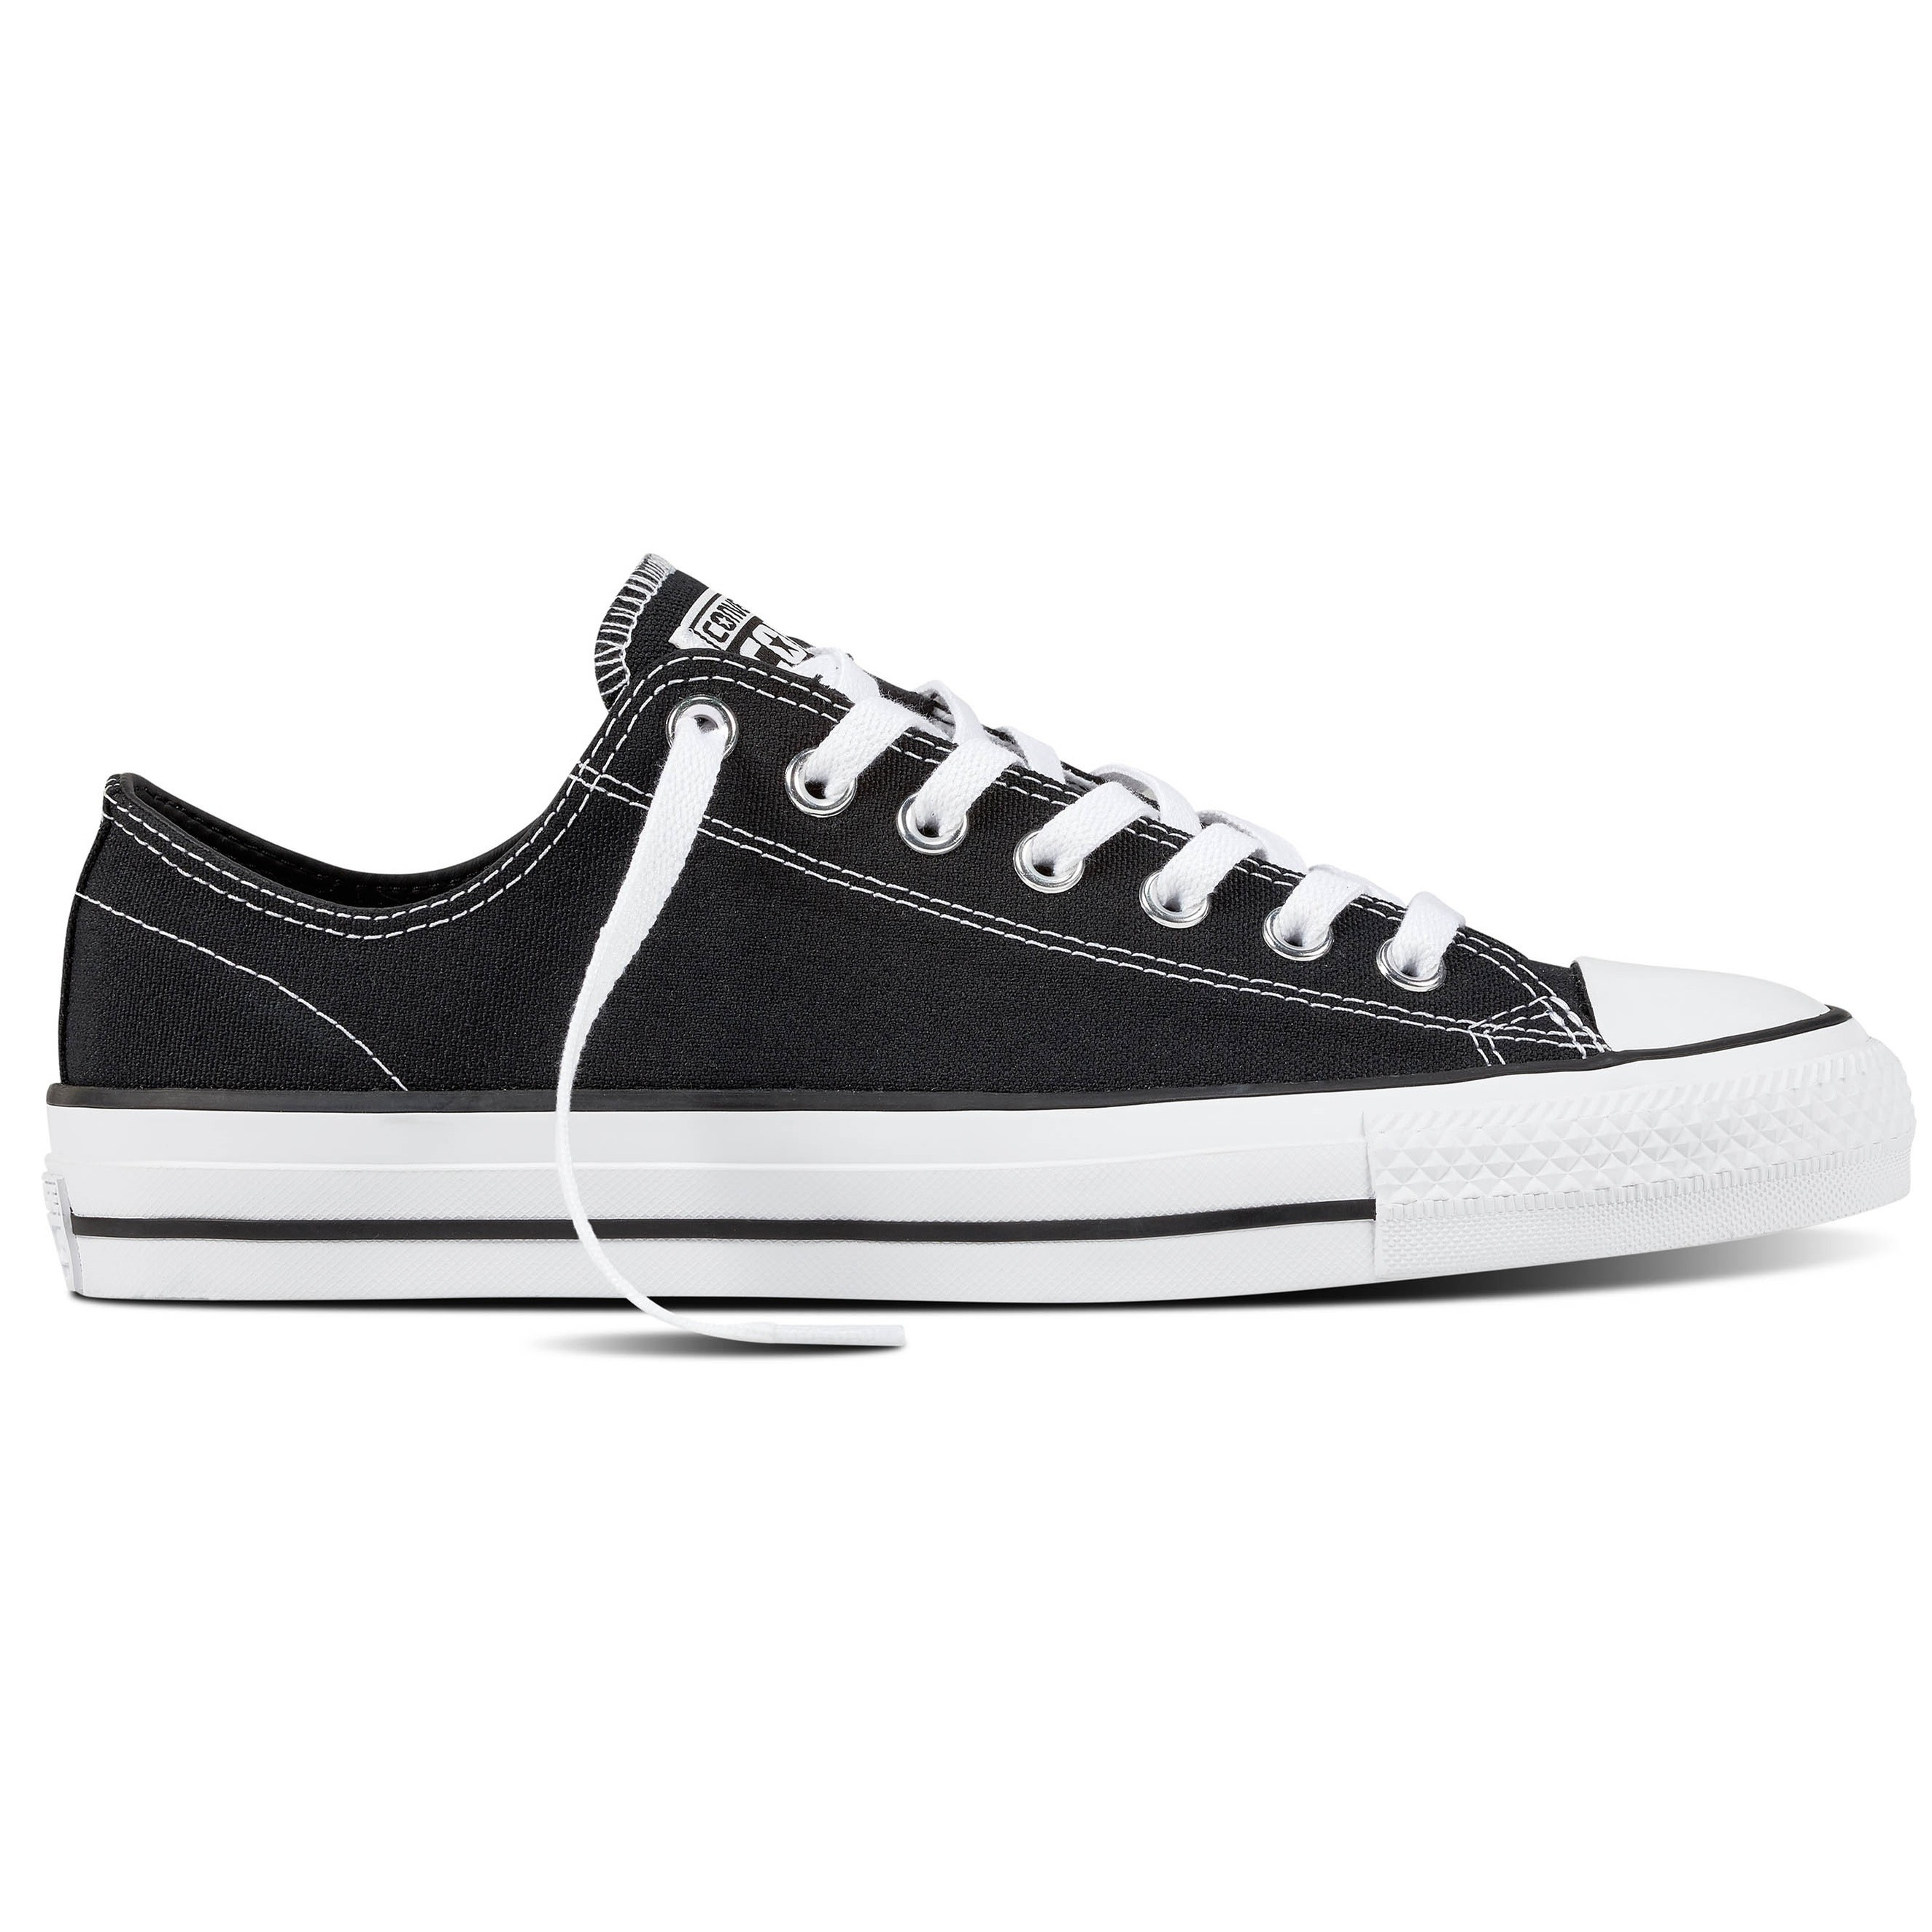 CTAS Pro Ox (Canvas) Black/Black/White